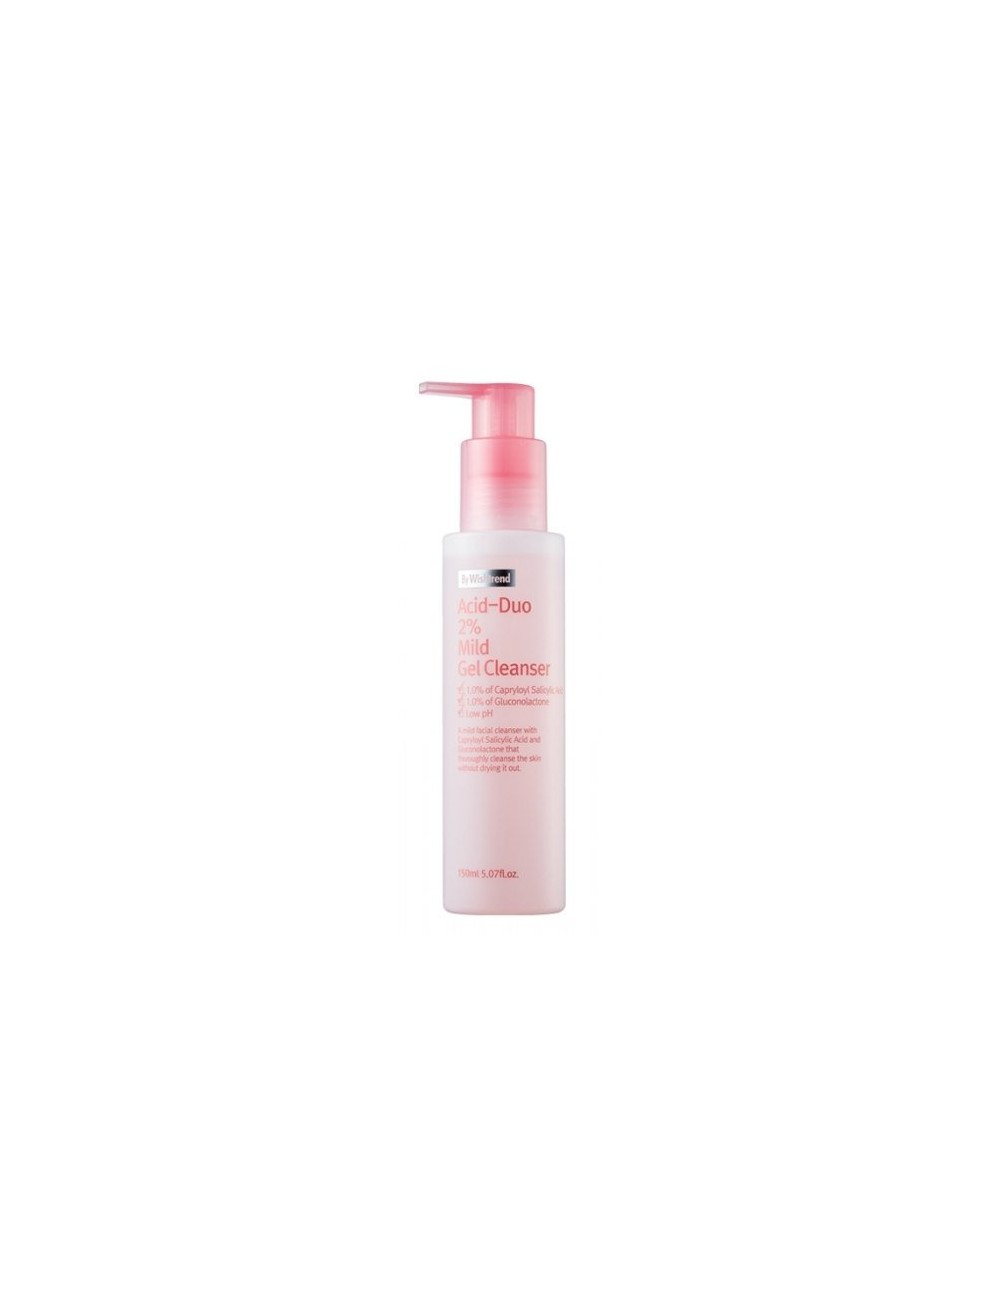 Limpiador Facial Suave By Wishtrend Acid-Duo 2% Mild Gel Cleanser